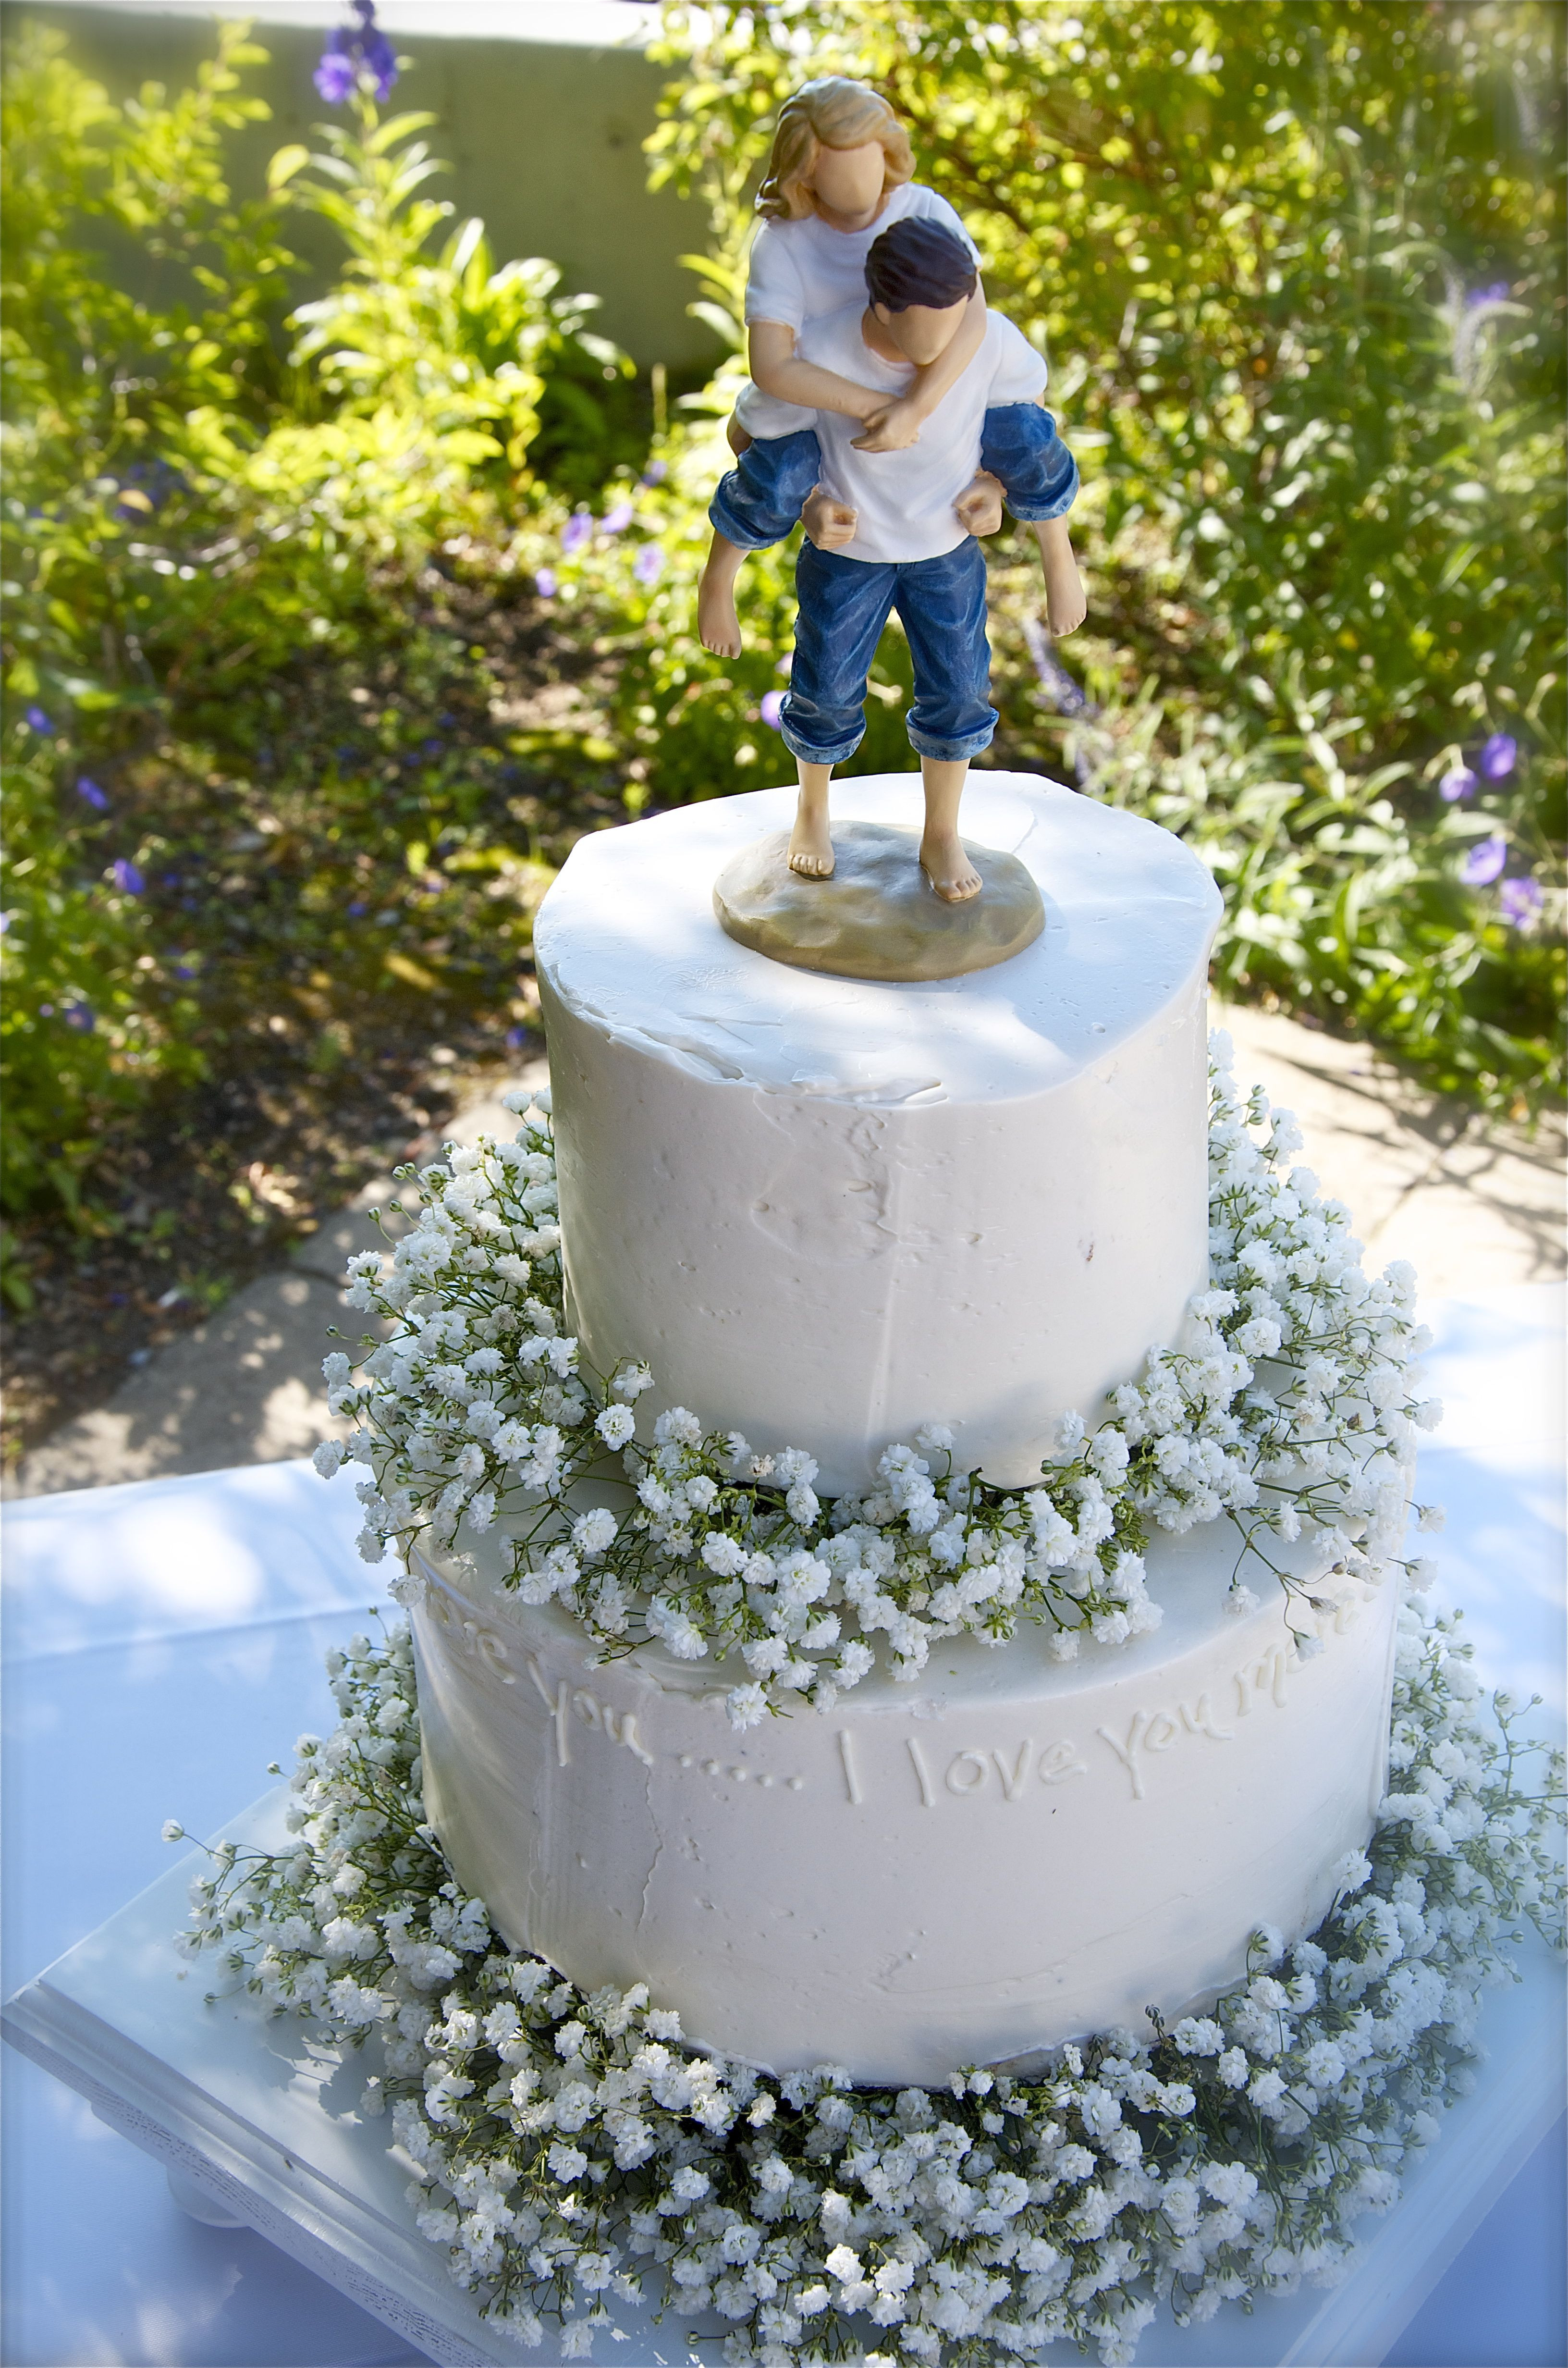 Wedding Cakes Idaho Falls  Wedding cake by Stacy Cakes in McCall Idaho It was